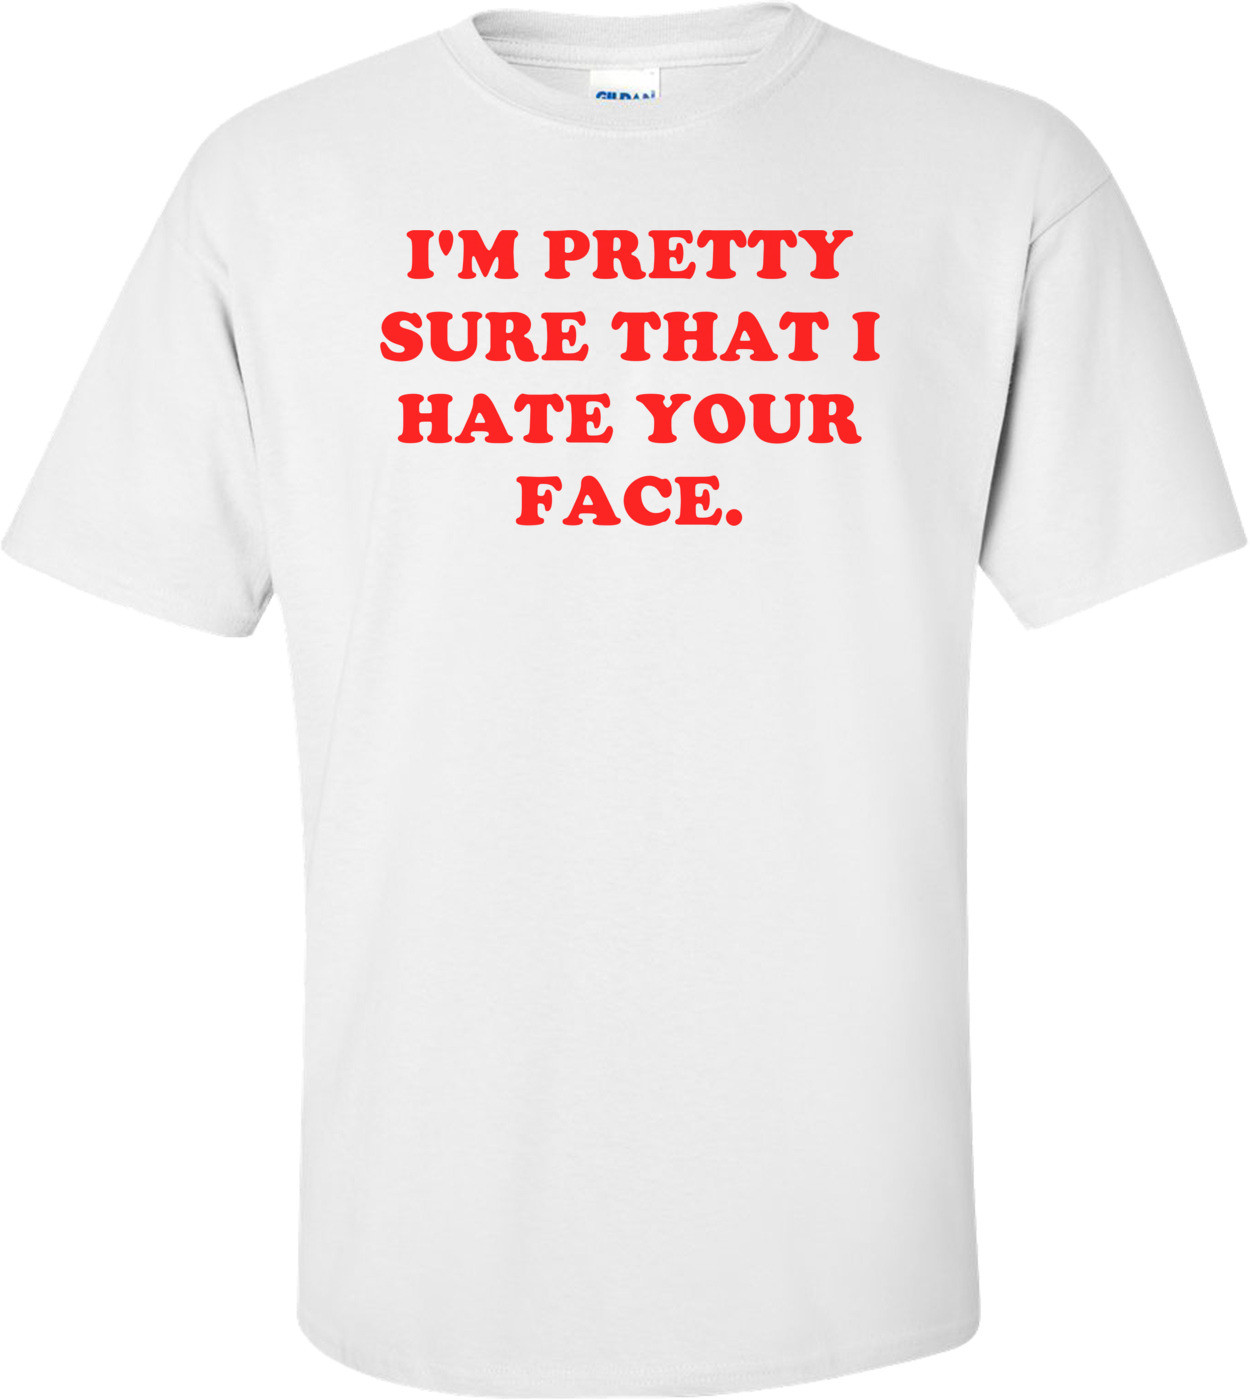 I'M PRETTY SURE THAT I HATE YOUR FACE. Shirt